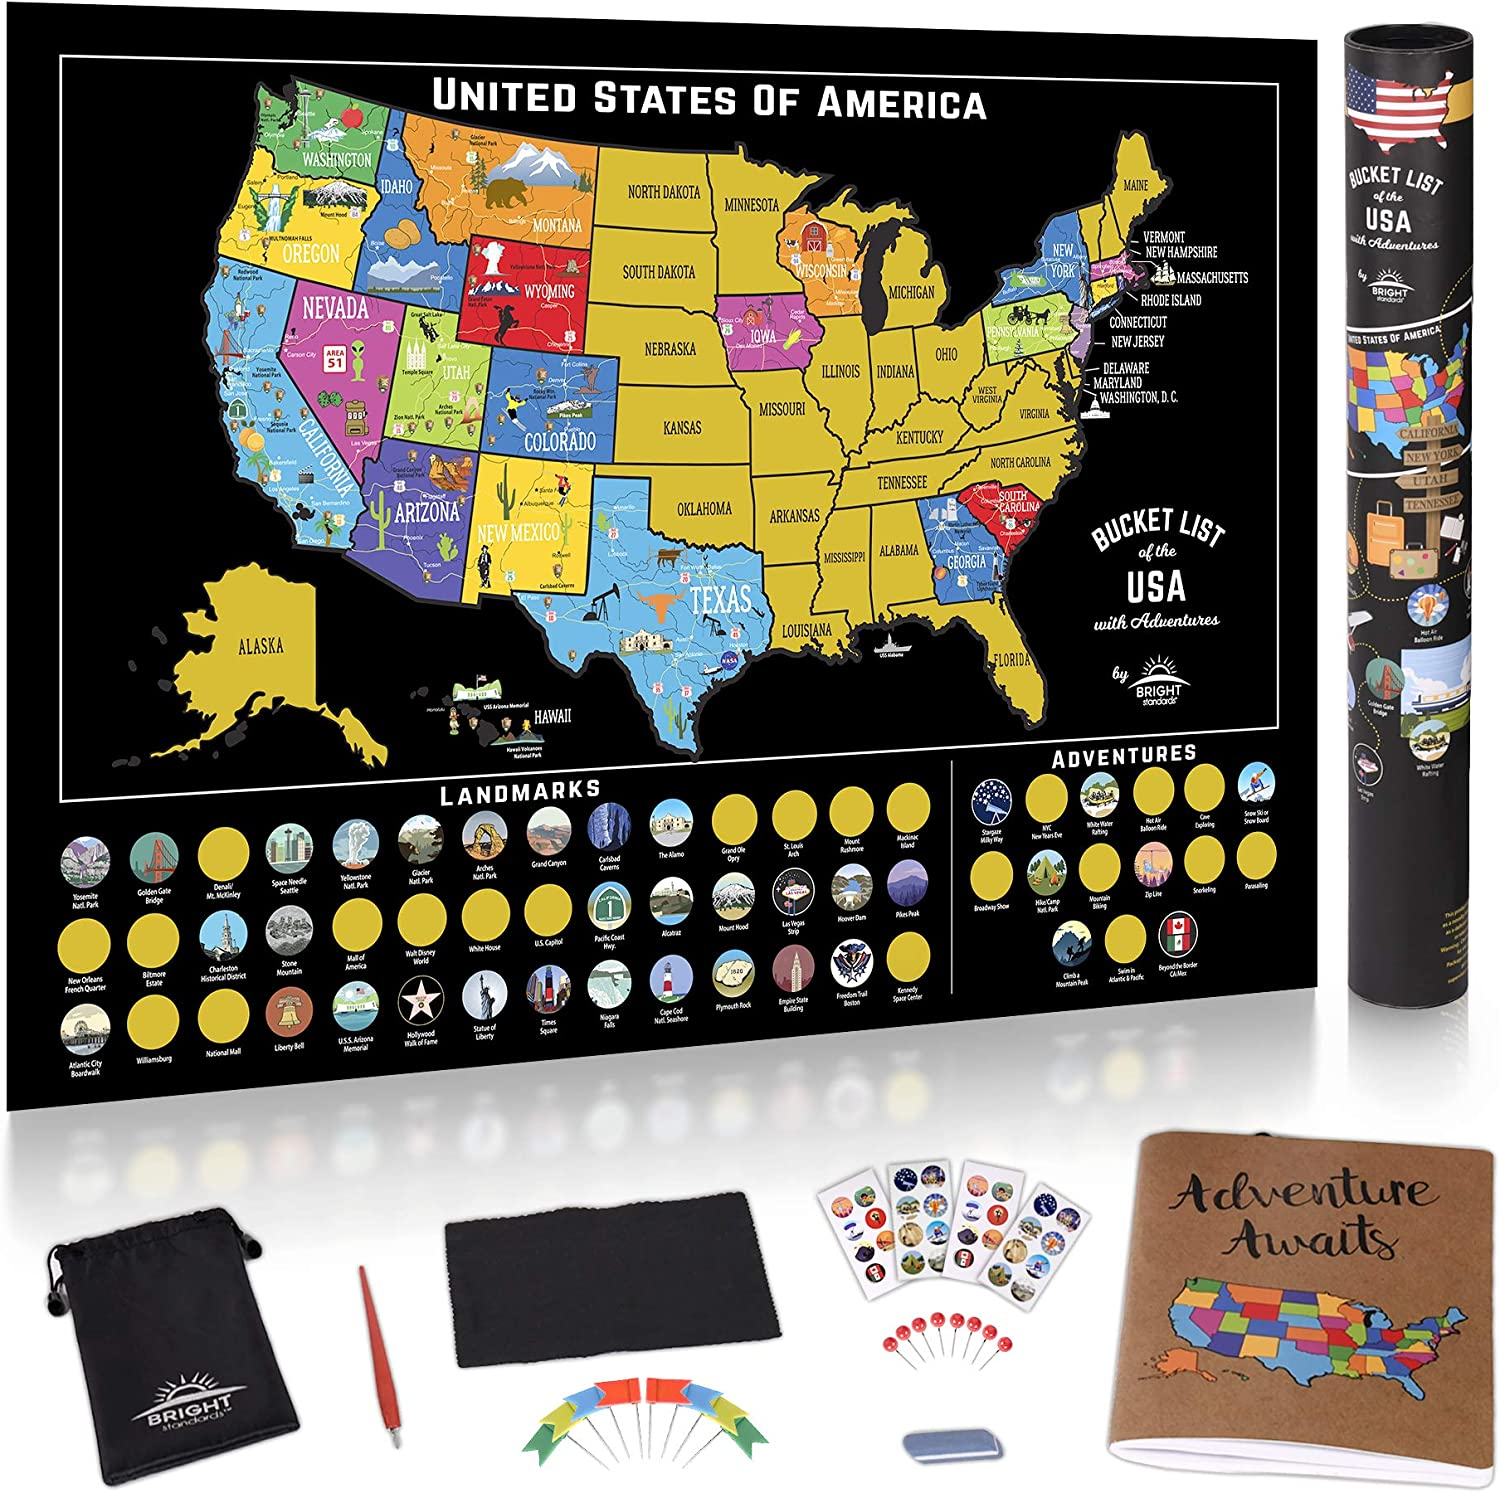 Scratch Off Map of The United States - Scratch Off USA Map Kit, 50 Pc Set,  85 Landmarks, US National Parks, Scratchable Adventure Maps Poster, Travel  ...